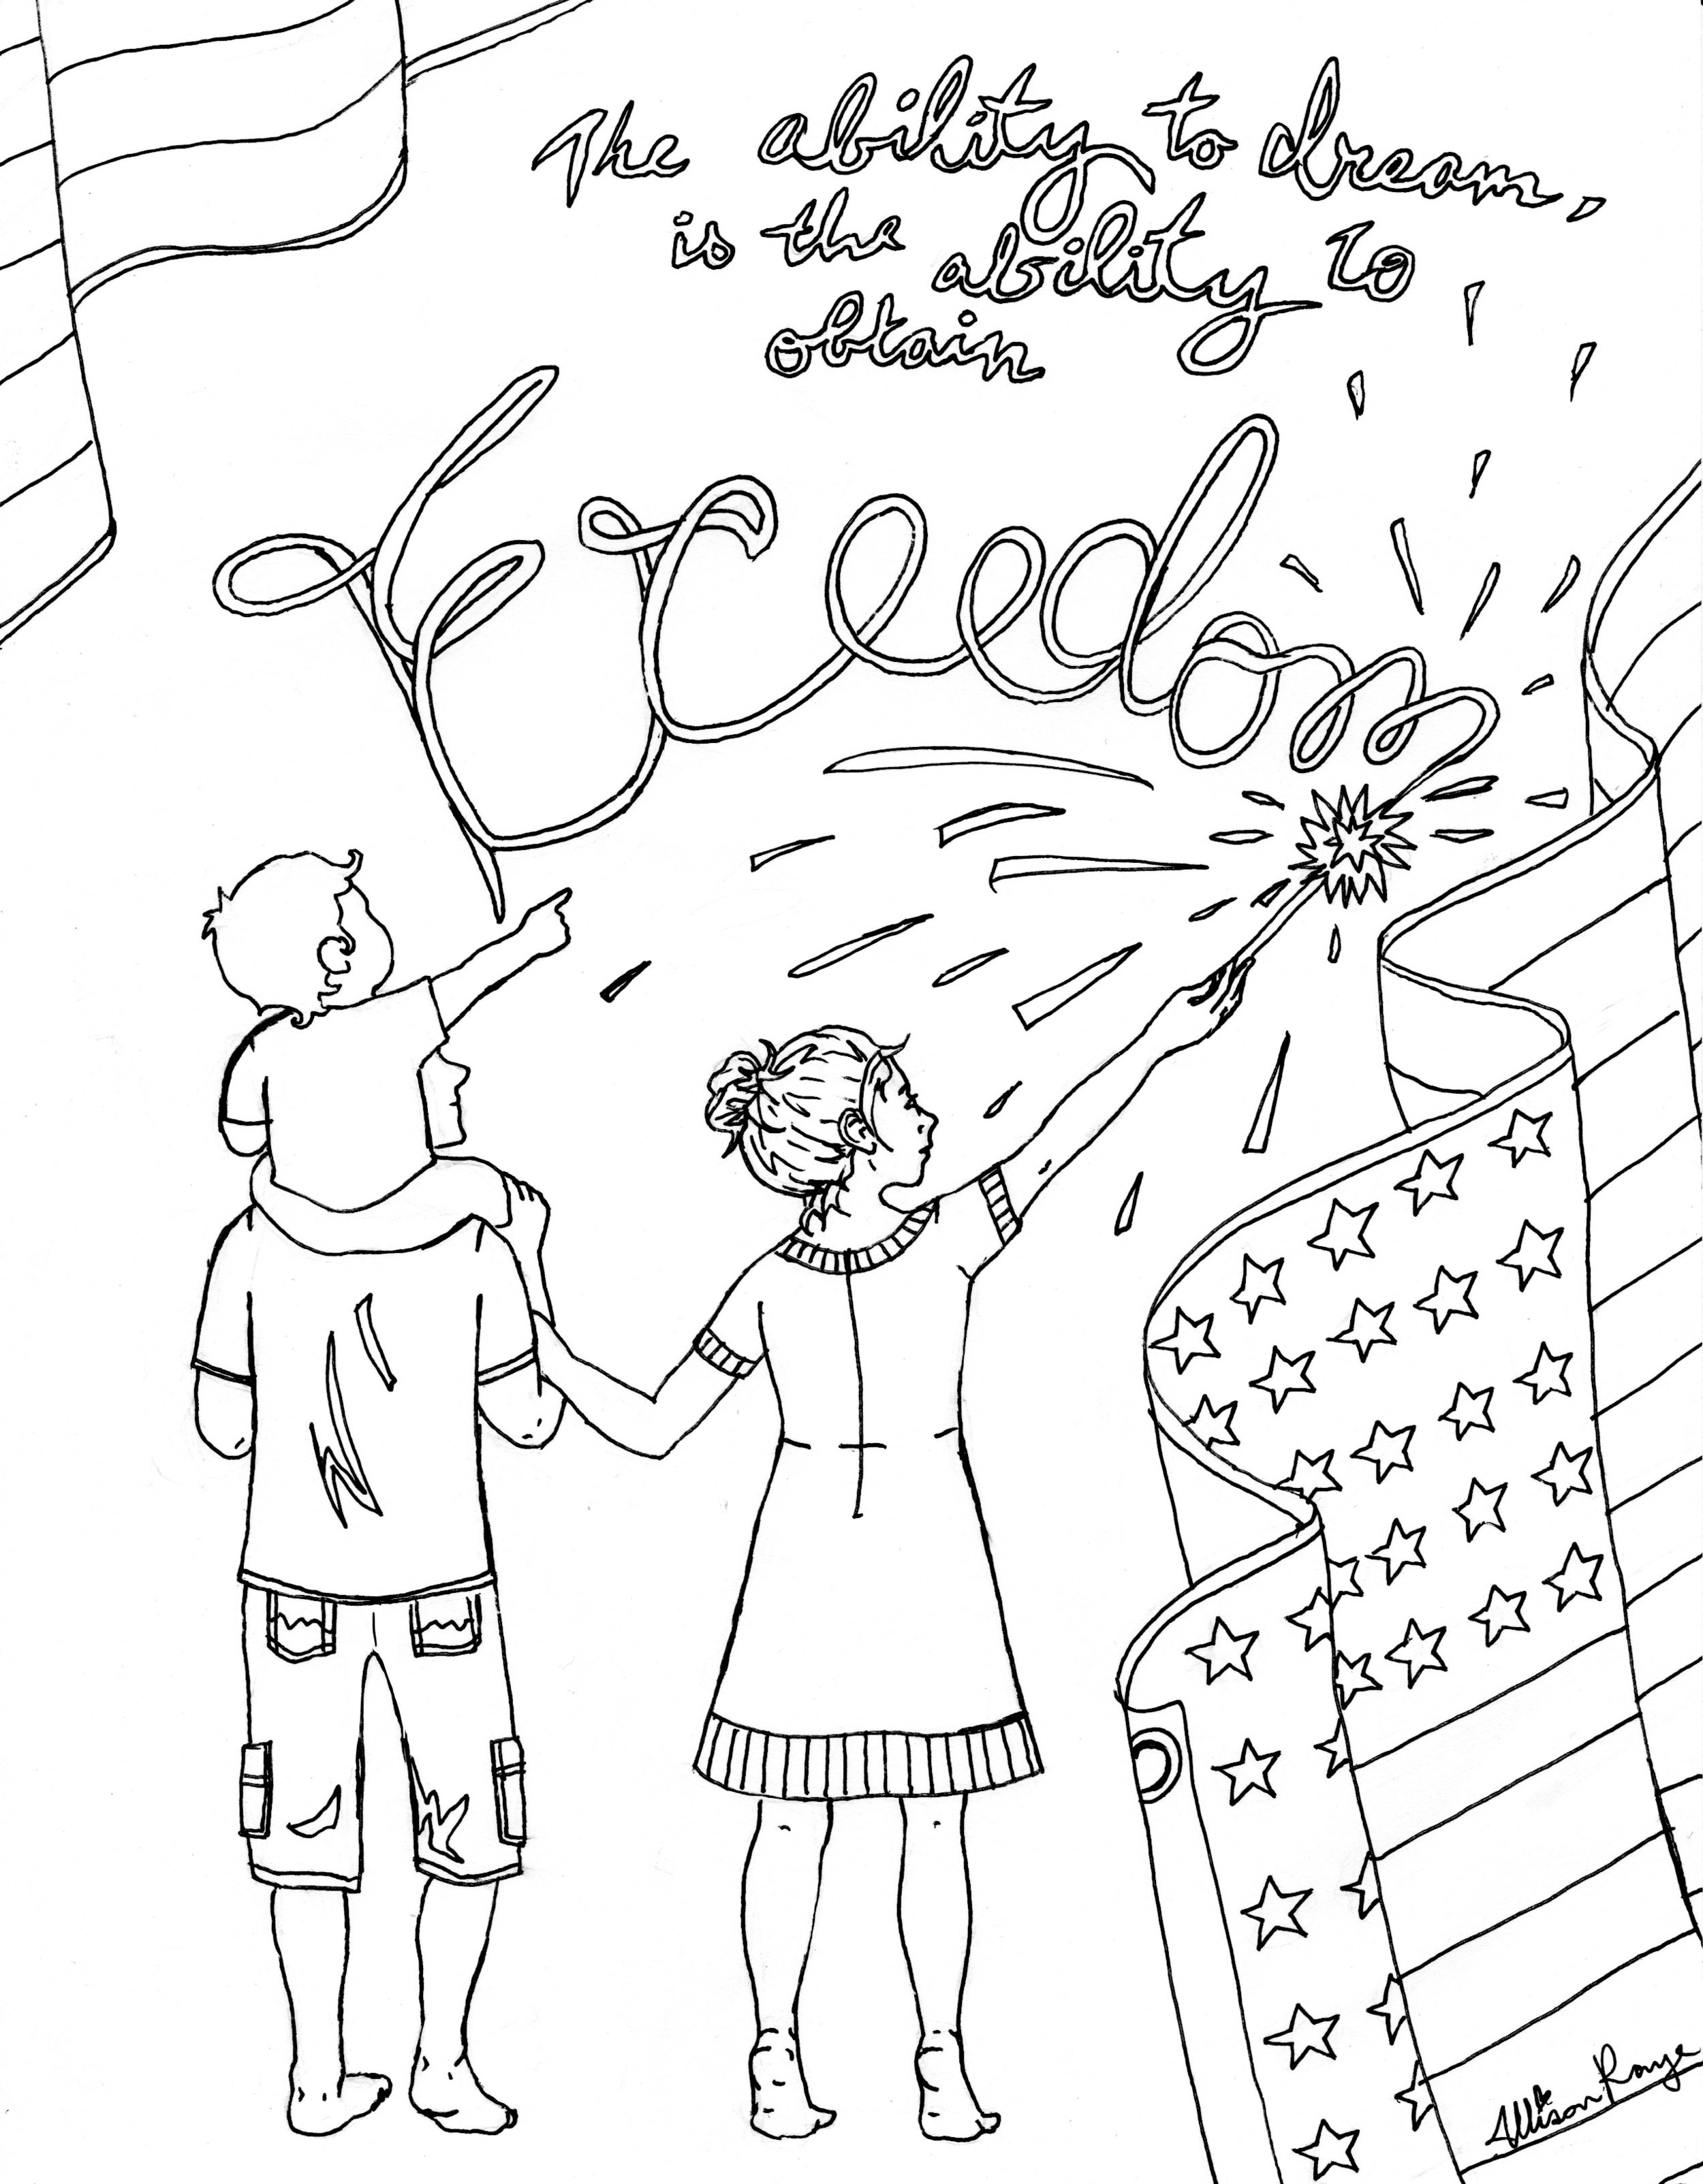 The button below leads to a pdf file of this coloring page which you can download and print!